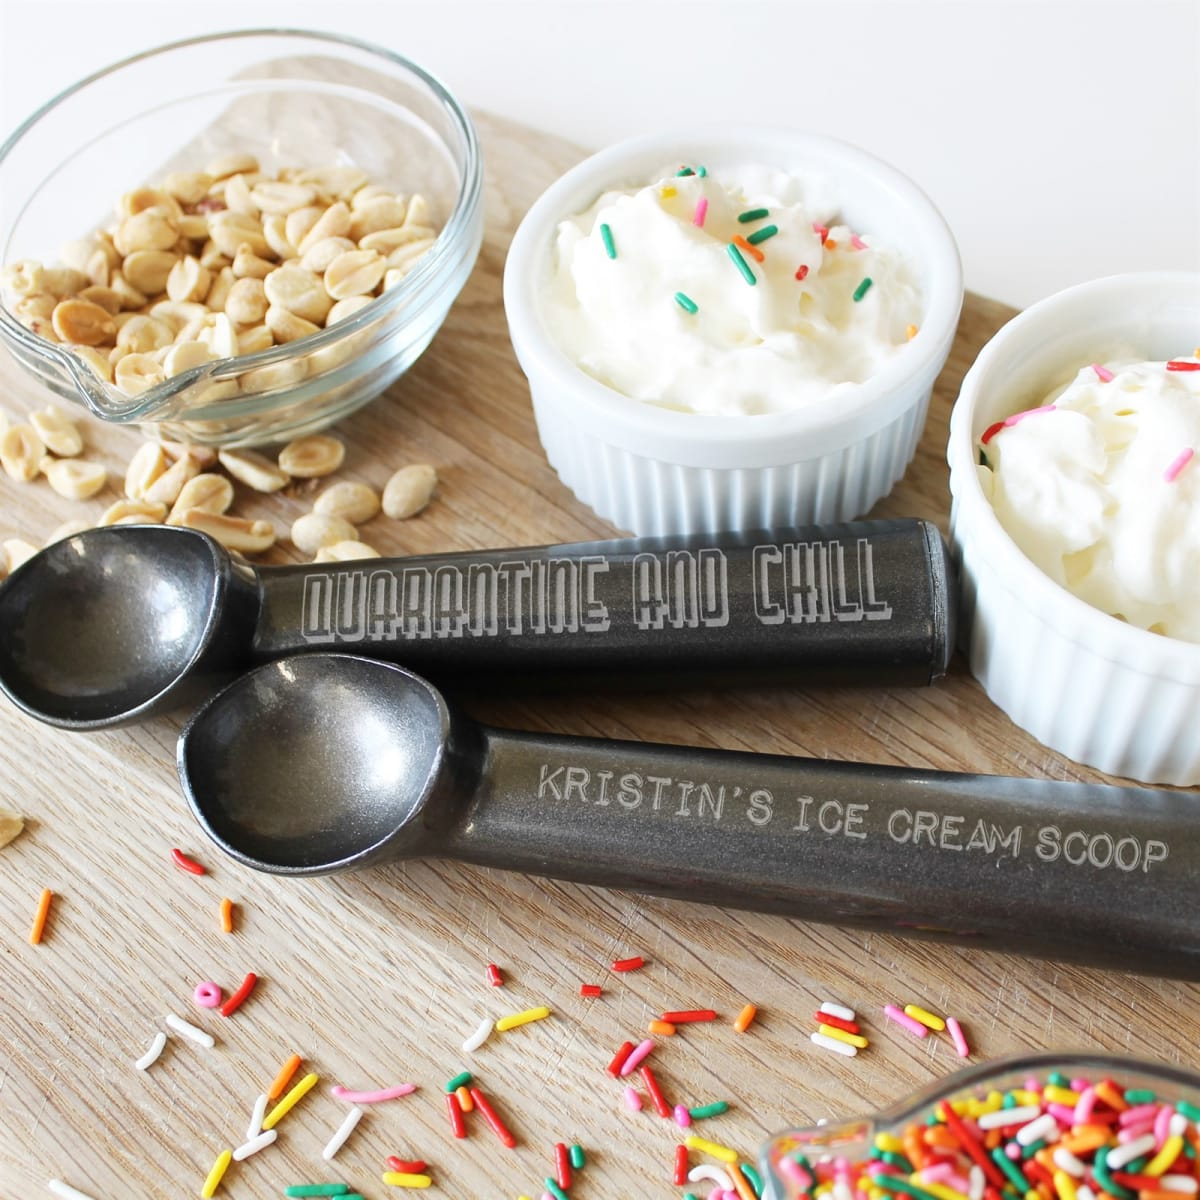 Personalized Engraved Ice Cream Scoop